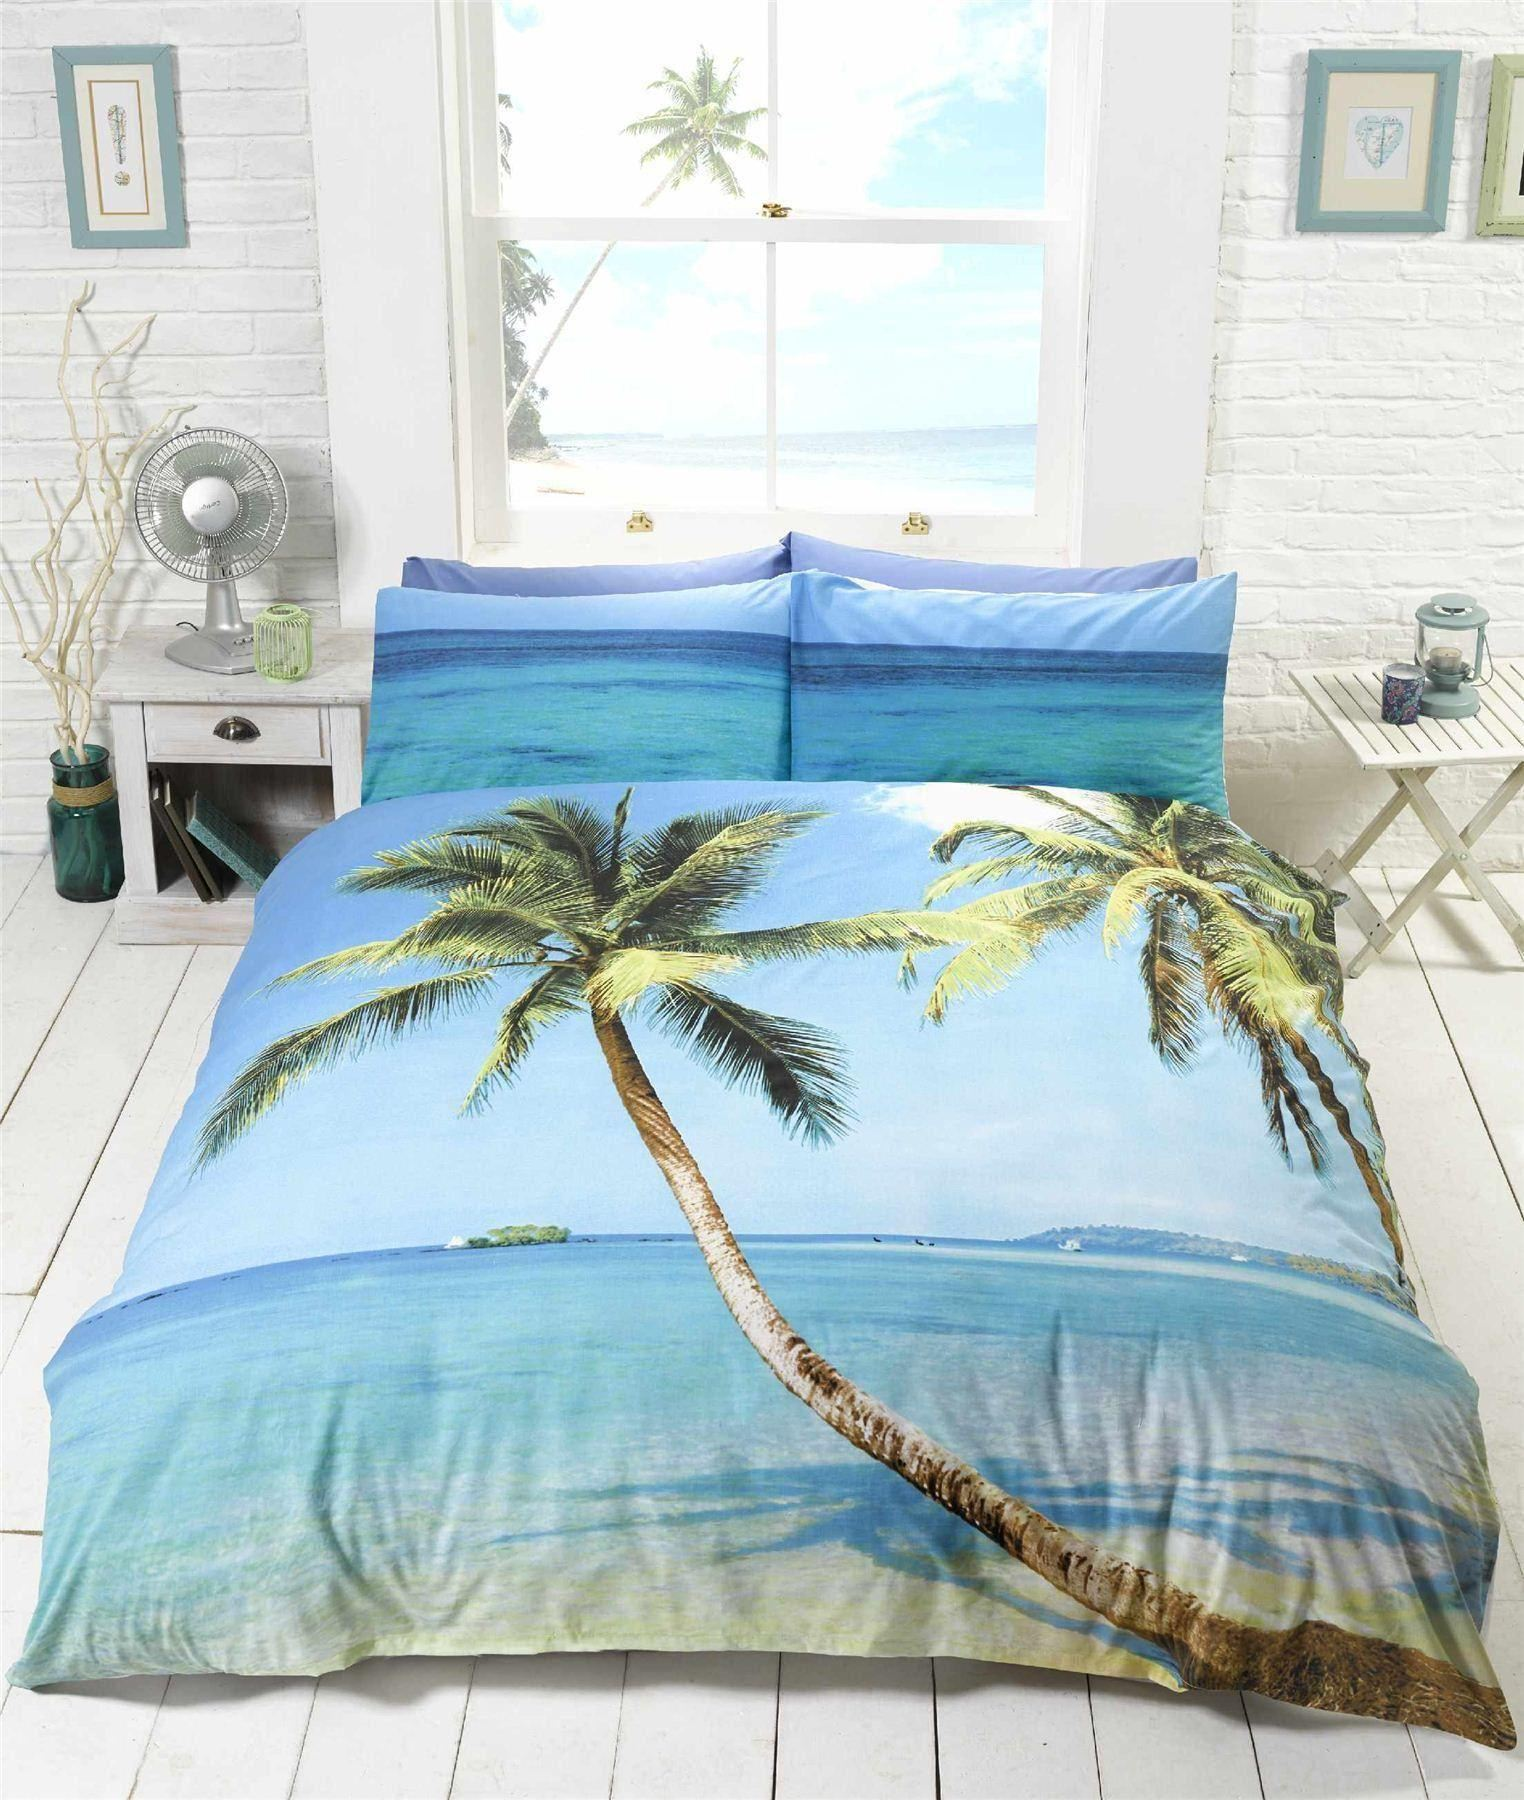 Find great deals on eBay for palm tree duvet. Shop with confidence.